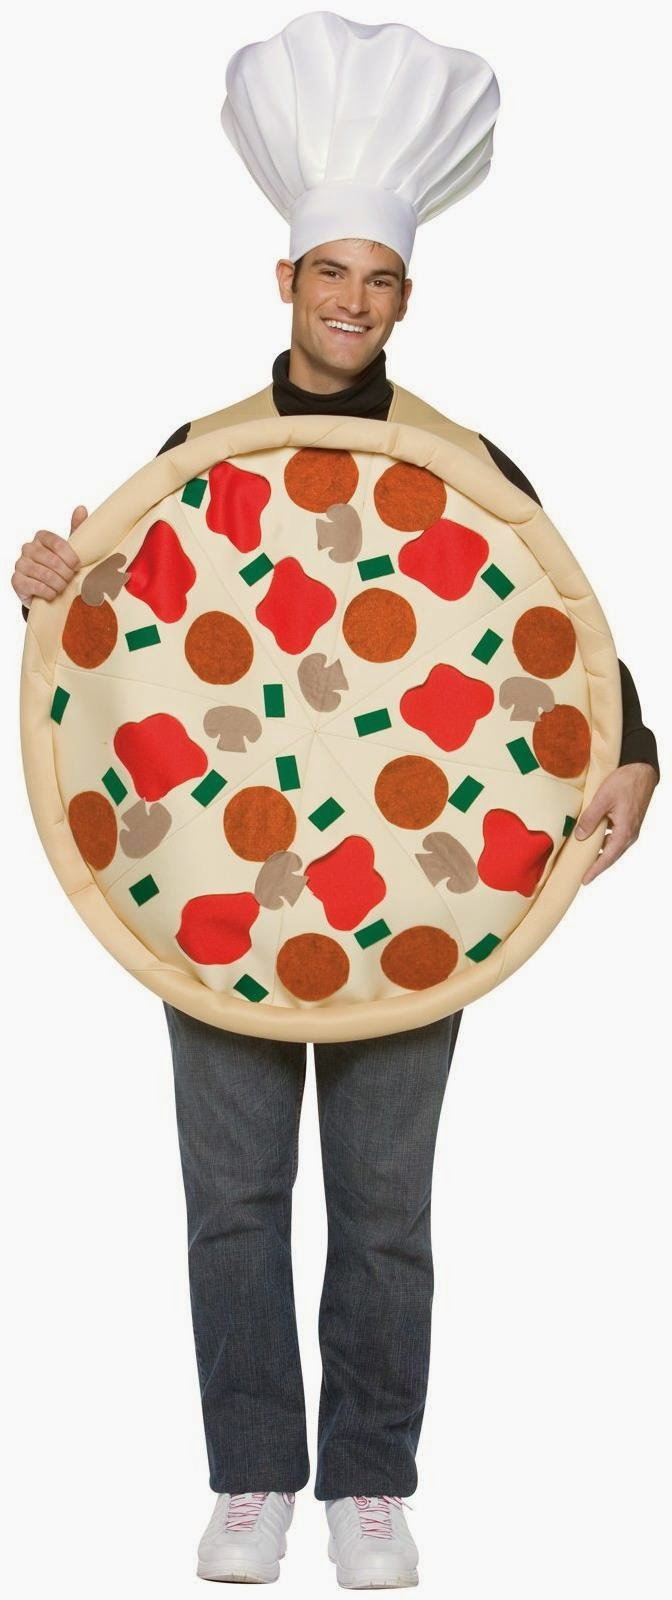 http://www.partybell.com/p-1470-pizza-pie-adult-costume.aspx?utm_source=Blog&utm_medium=Social&utm_campaign=International-joke-day-costume-ideas